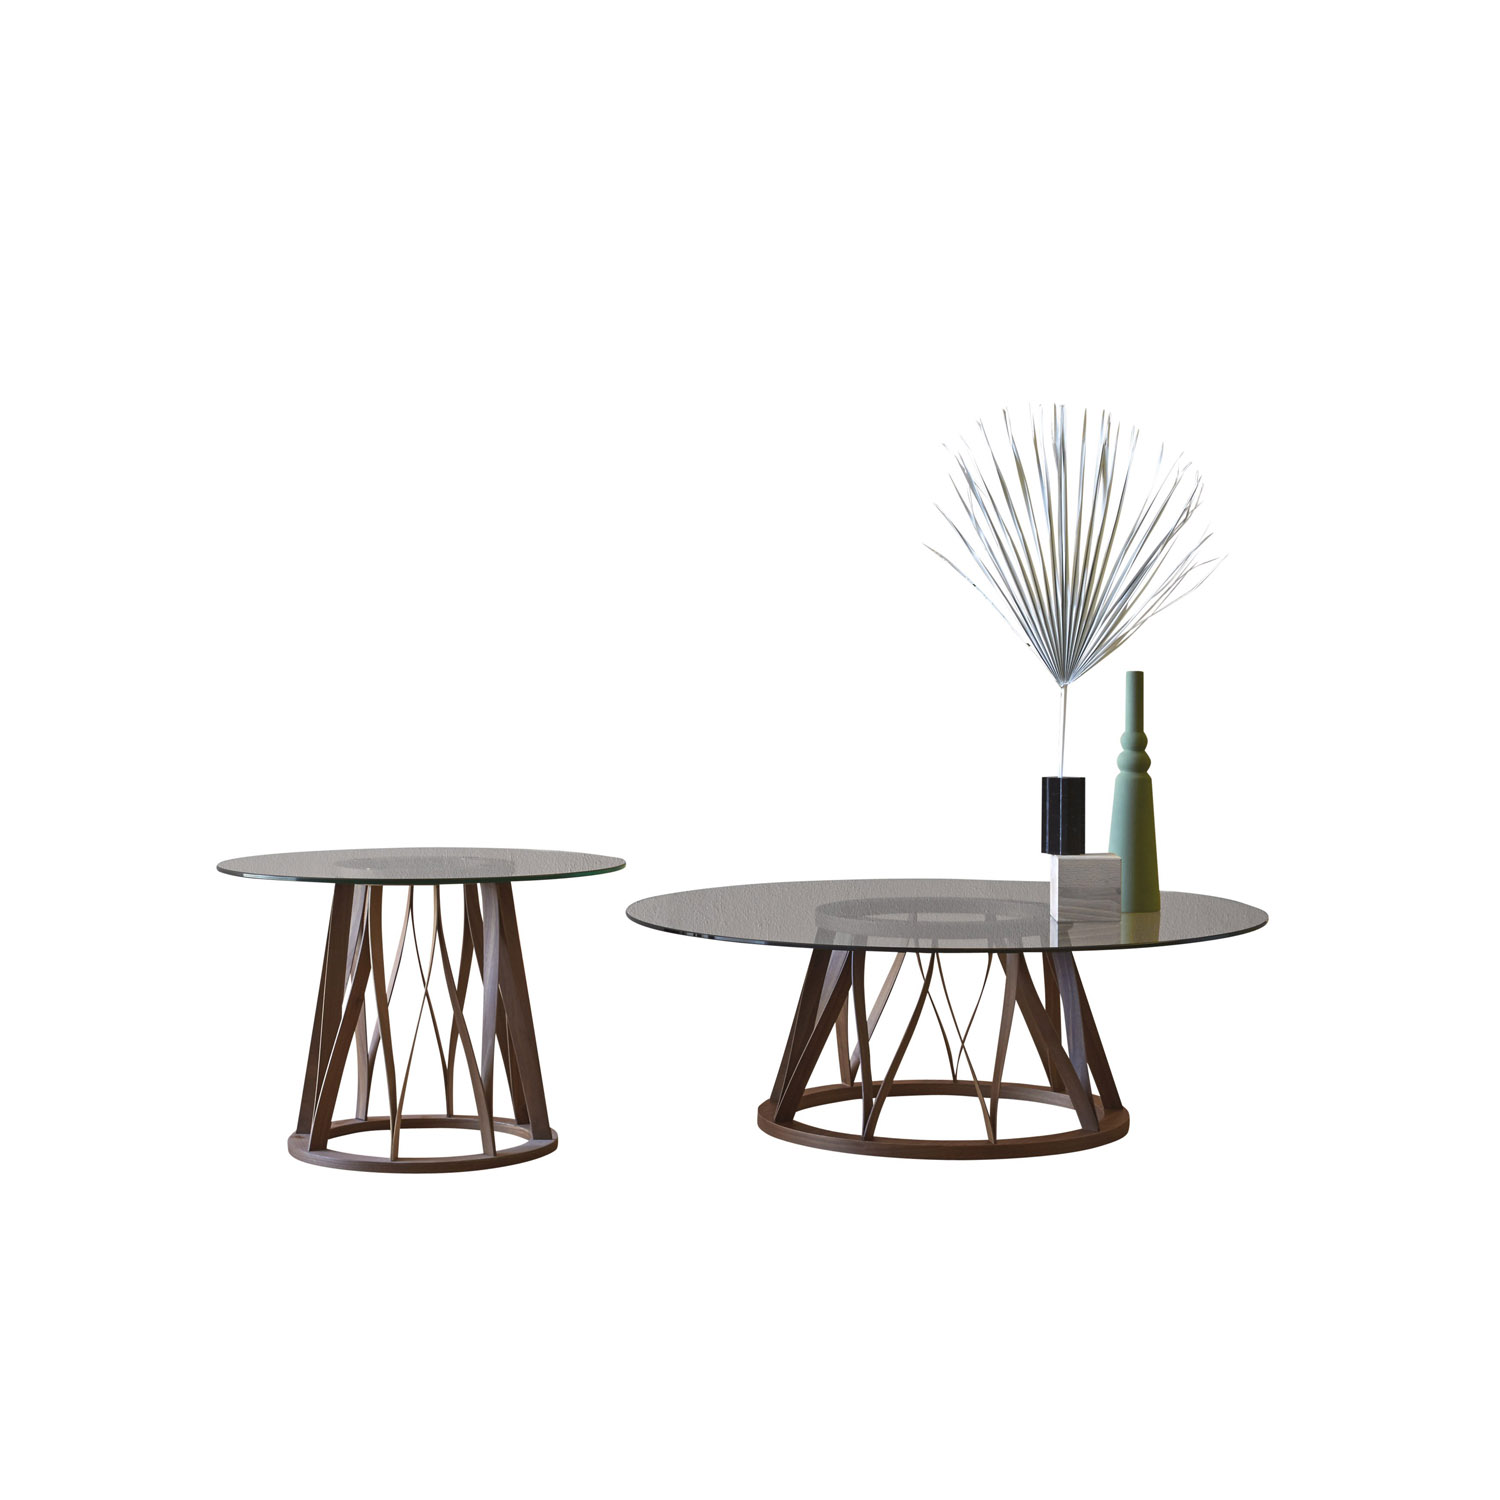 Acco Coffee Table - Acco is an elegant dining table with a strong character that resists labelling. It displays a mature, sophisticated language, which is developed through the design of the base frame with its distinct regular pattern of wooden lines.  | Matter of Stuff